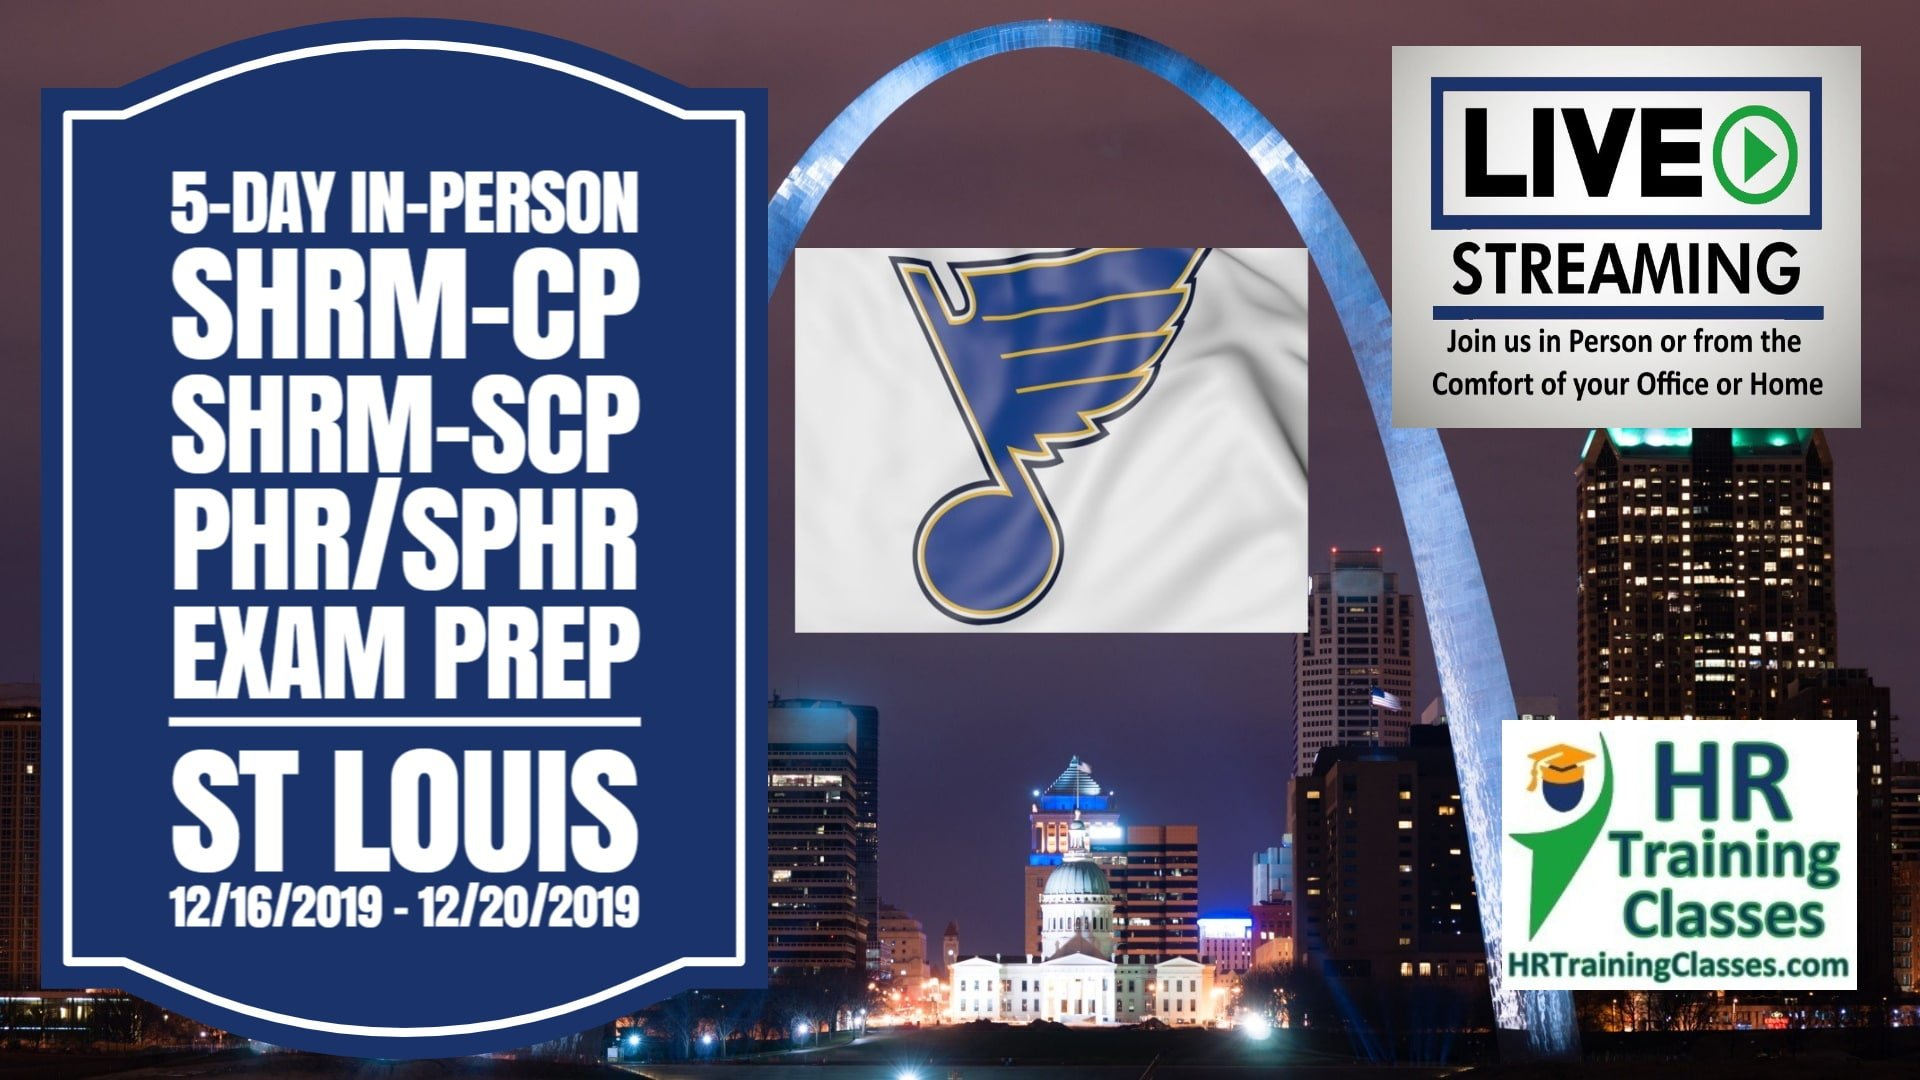 5 Day SHRM-CP, SHRM-SCP, PHR, SPHR Exam Prep Boot Camp in St Louis, MO (Starts 12/16/2019)